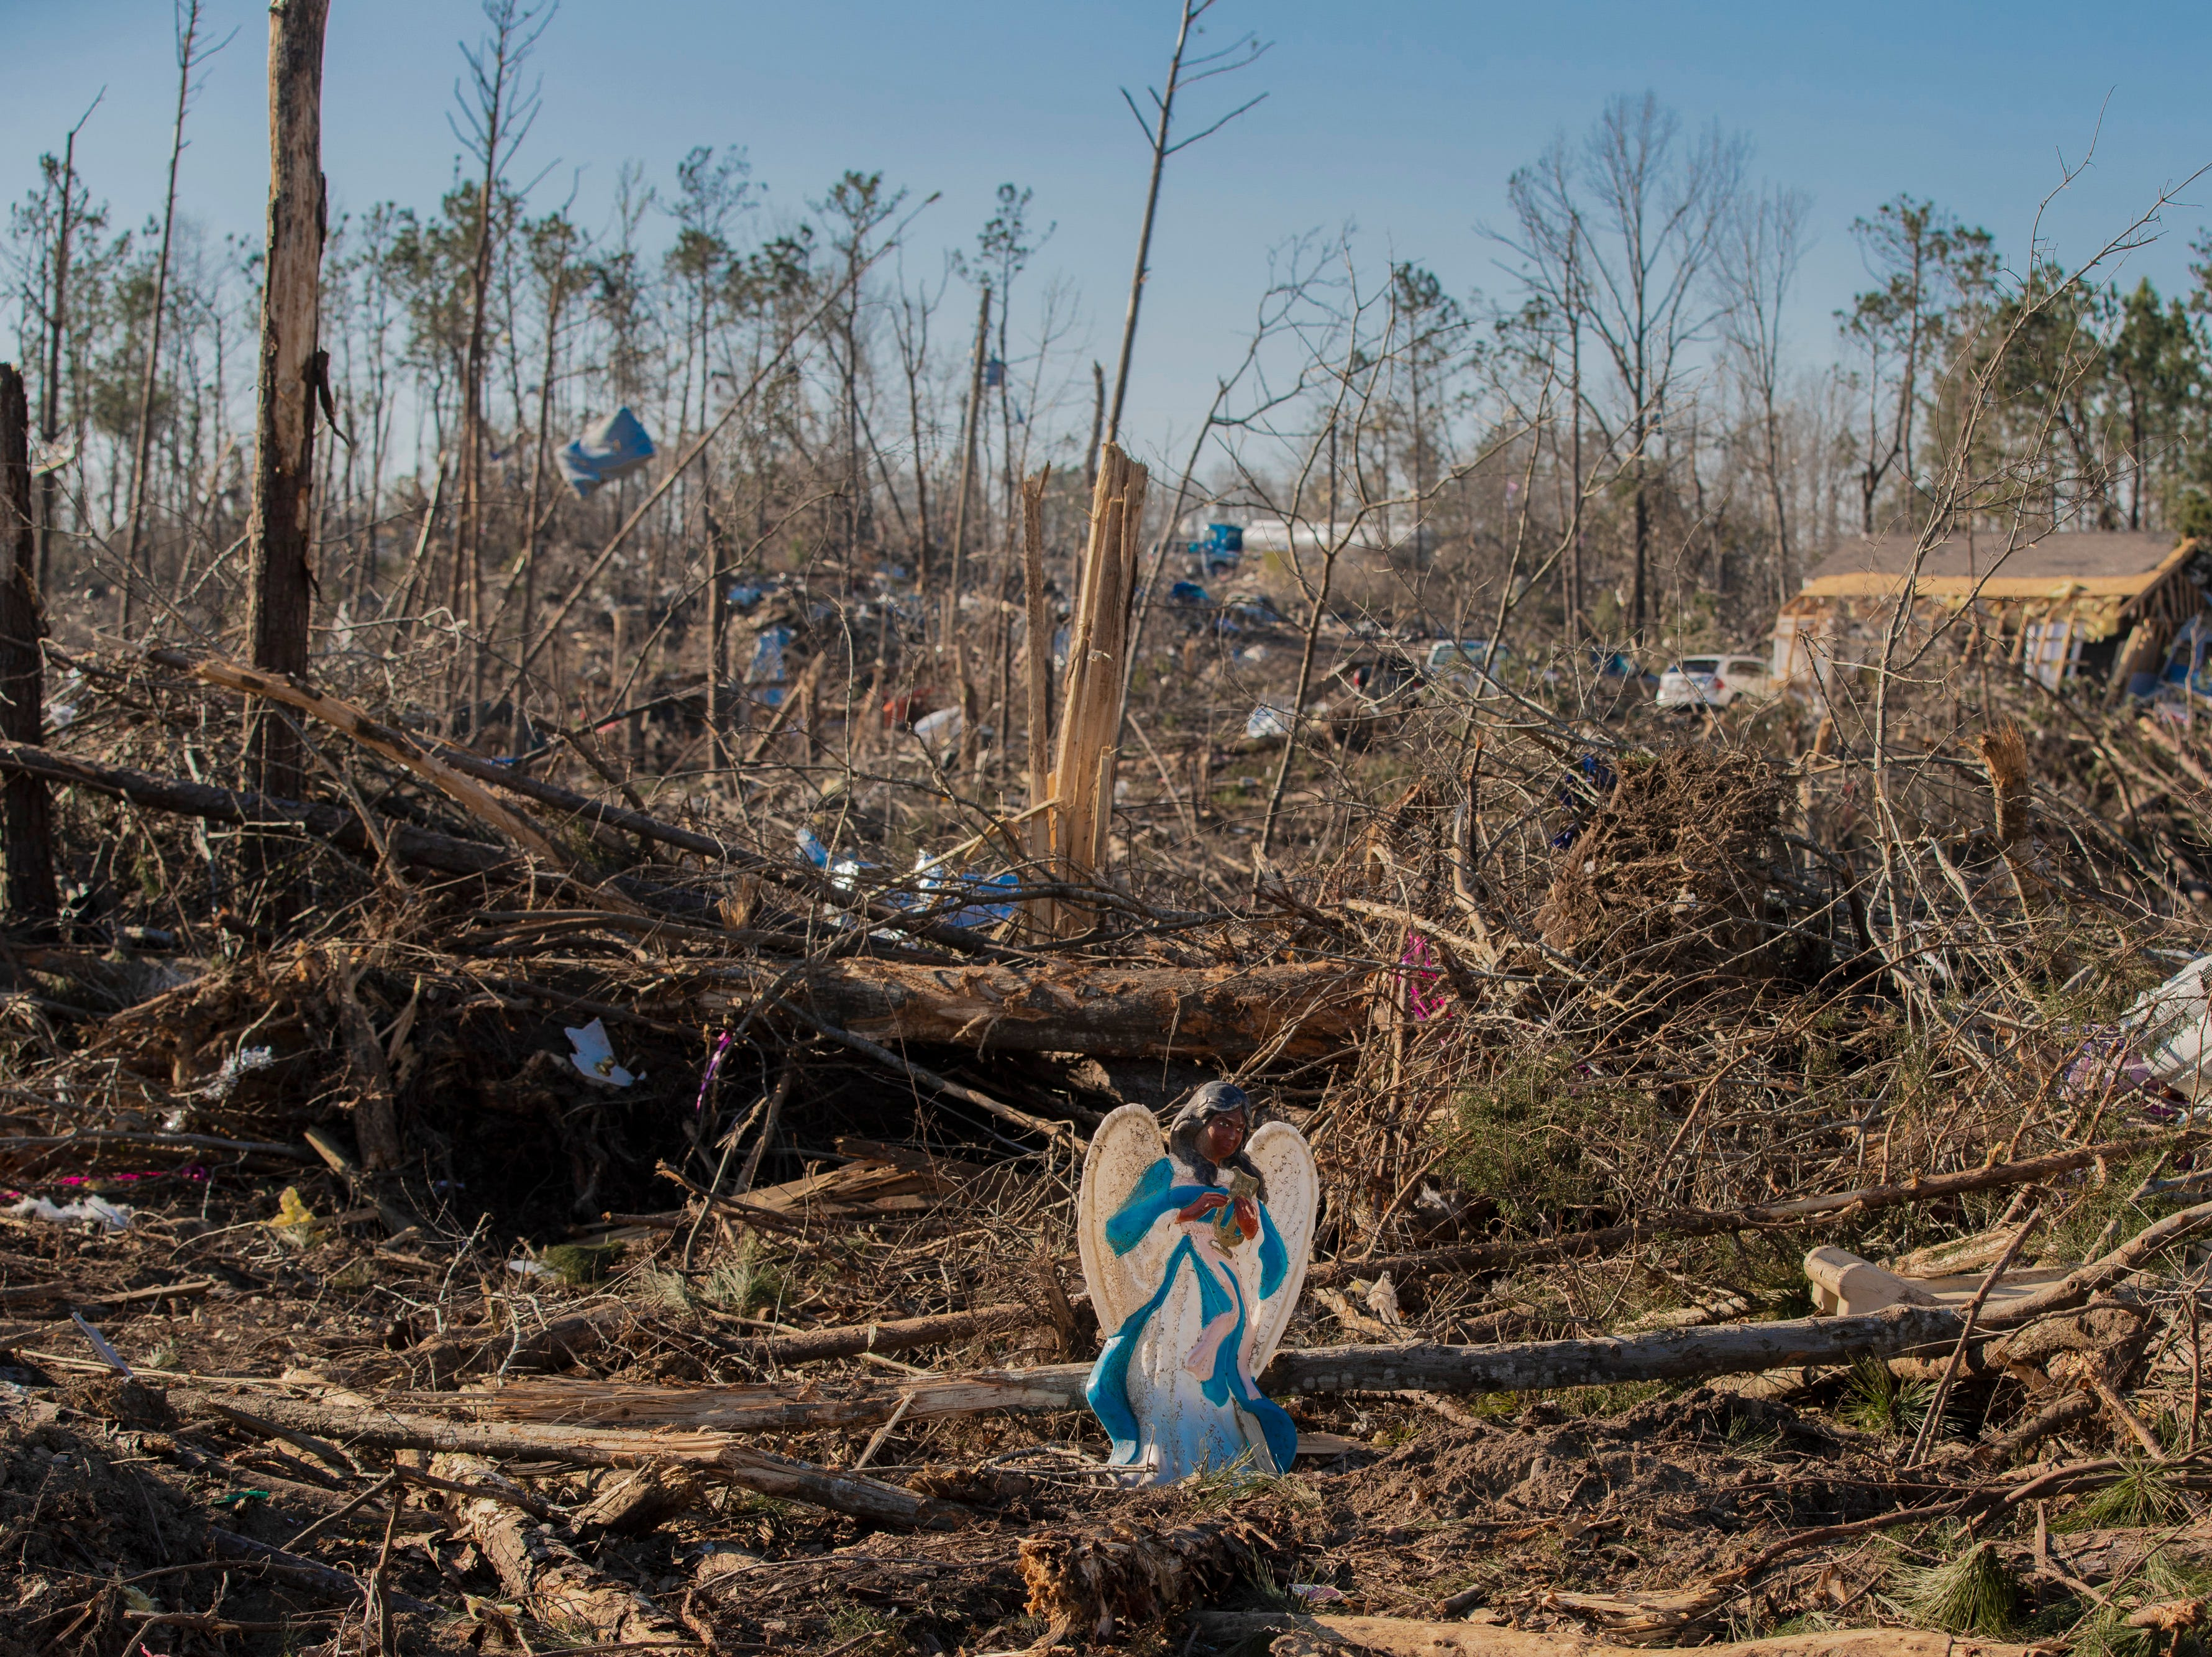 A plastic angel sits propped up among the broken trees and debris in Beauregard, Ala. on March 6, 2019.